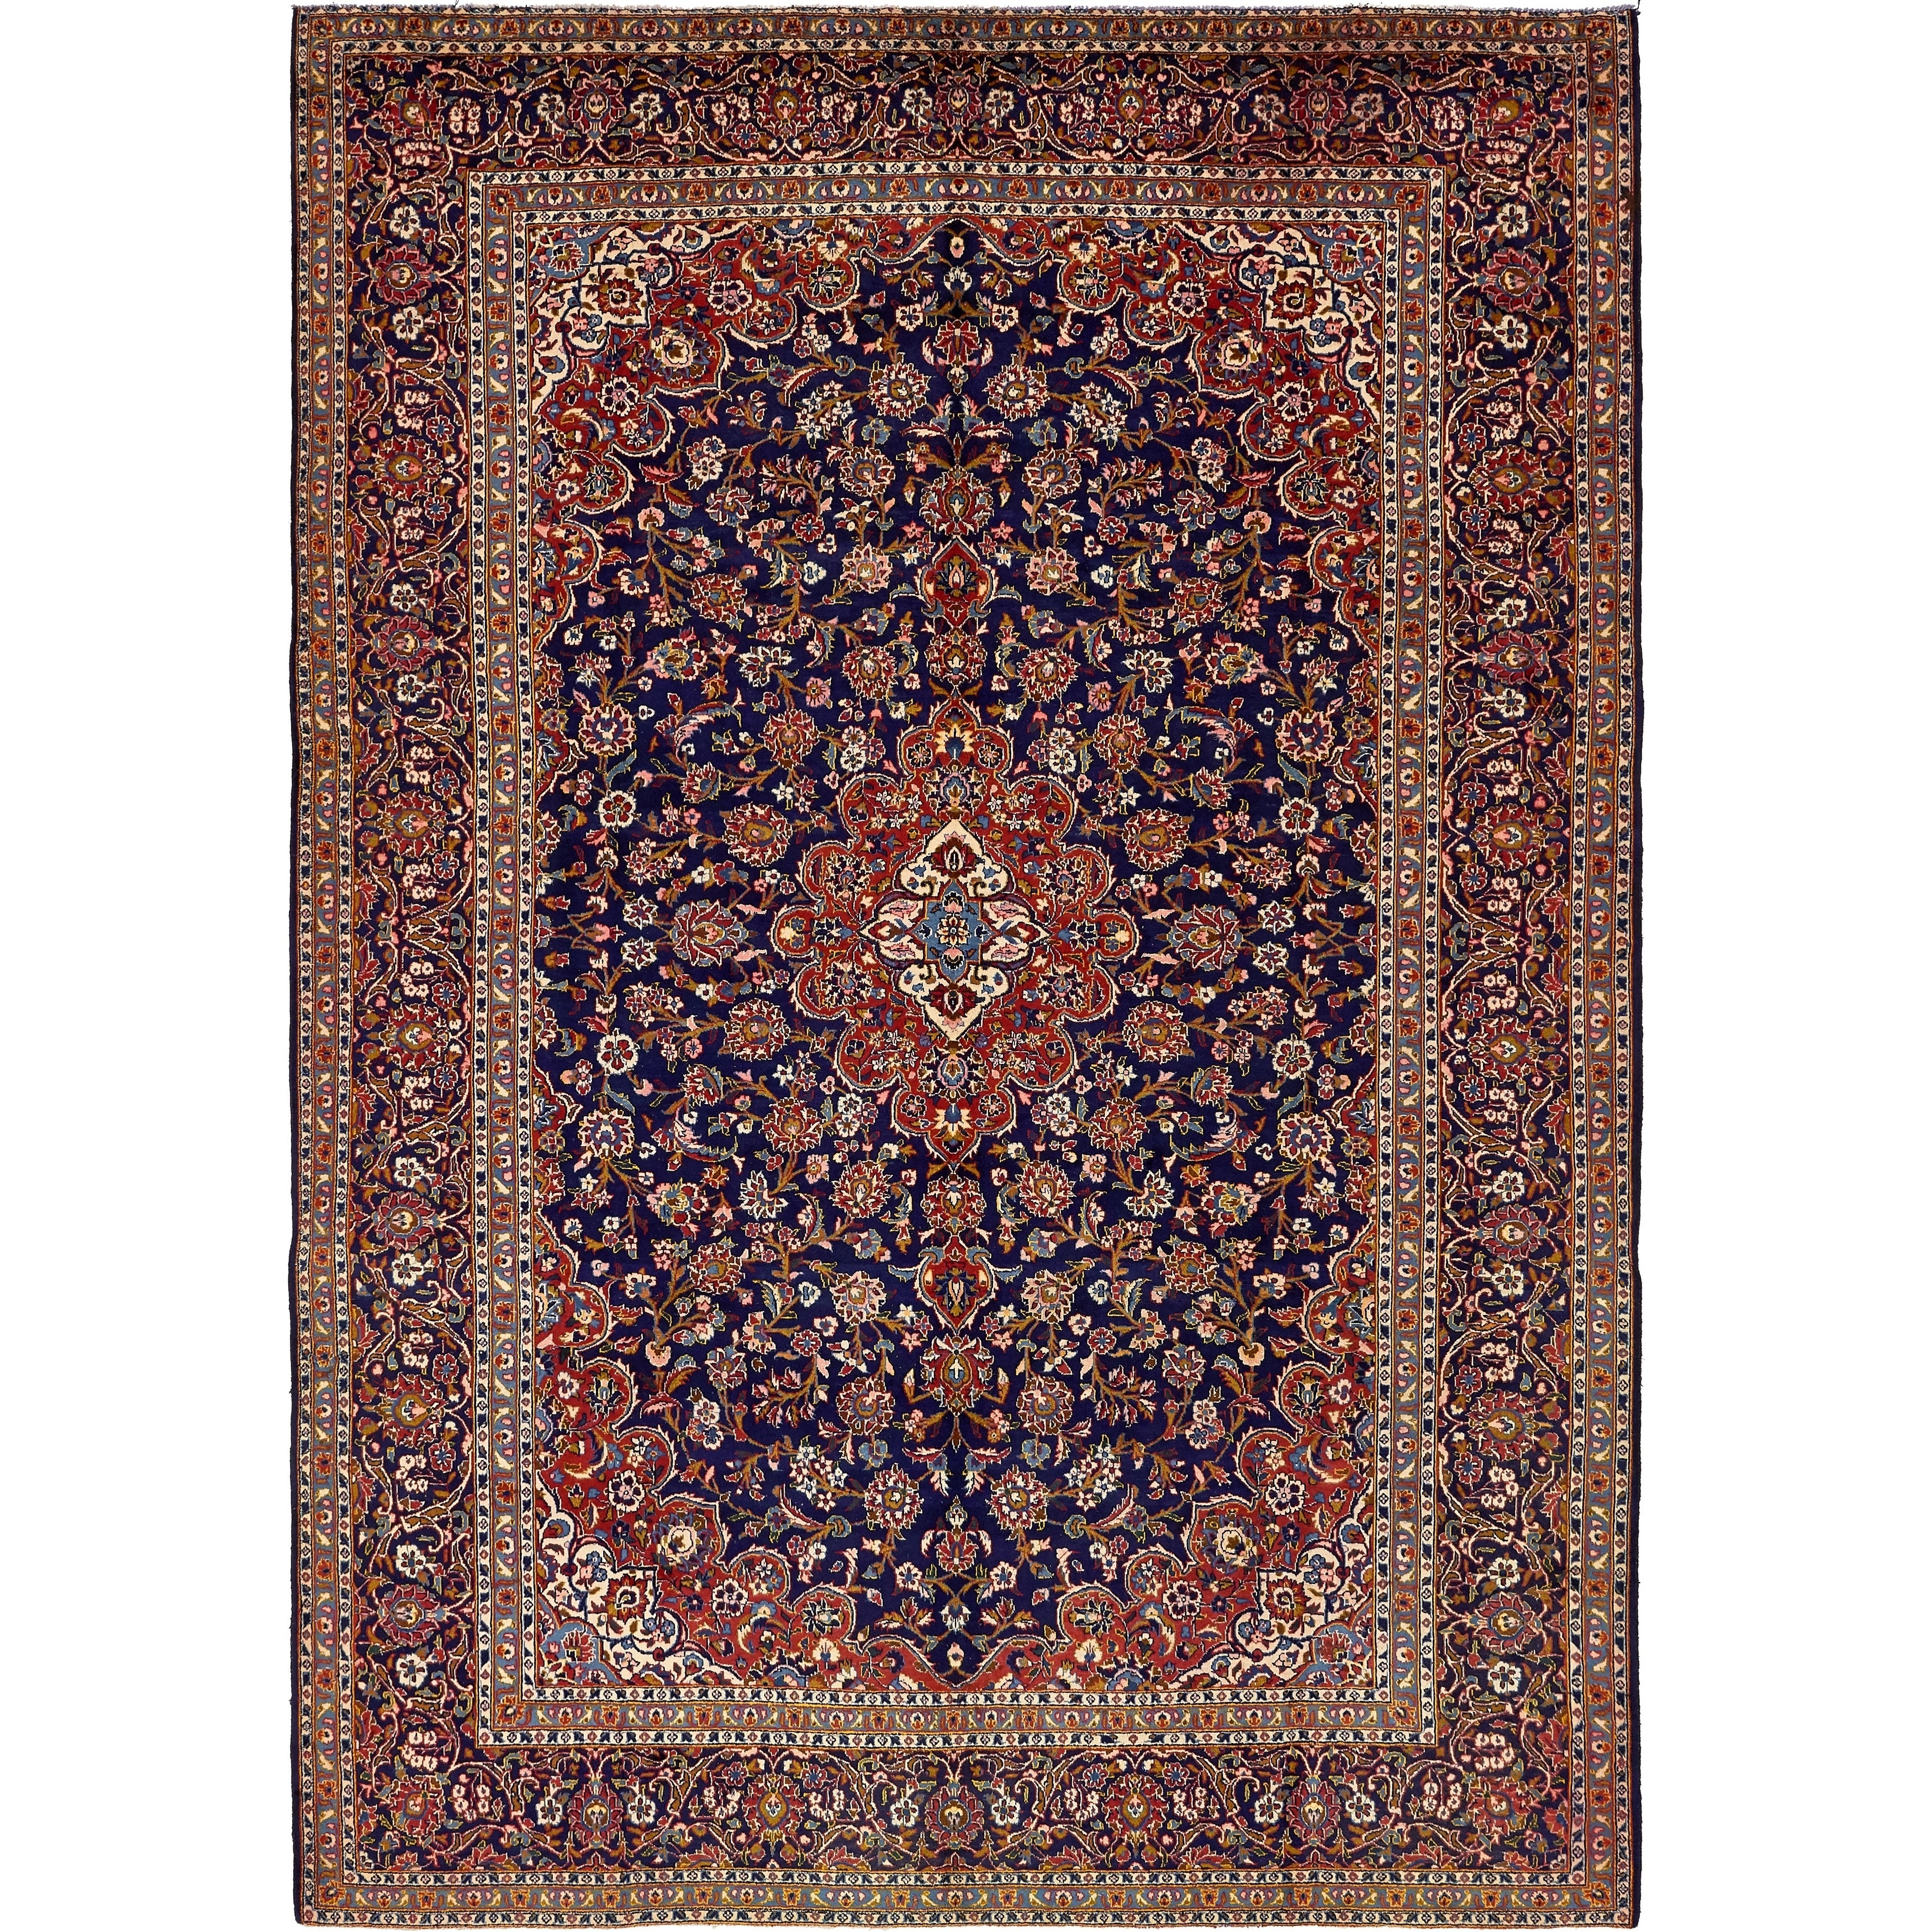 Hand Knotted Kashan Semi Antique Wool Area Rug - 9 7 x 13 9 (Navy blue - 9 7 x 13 9)